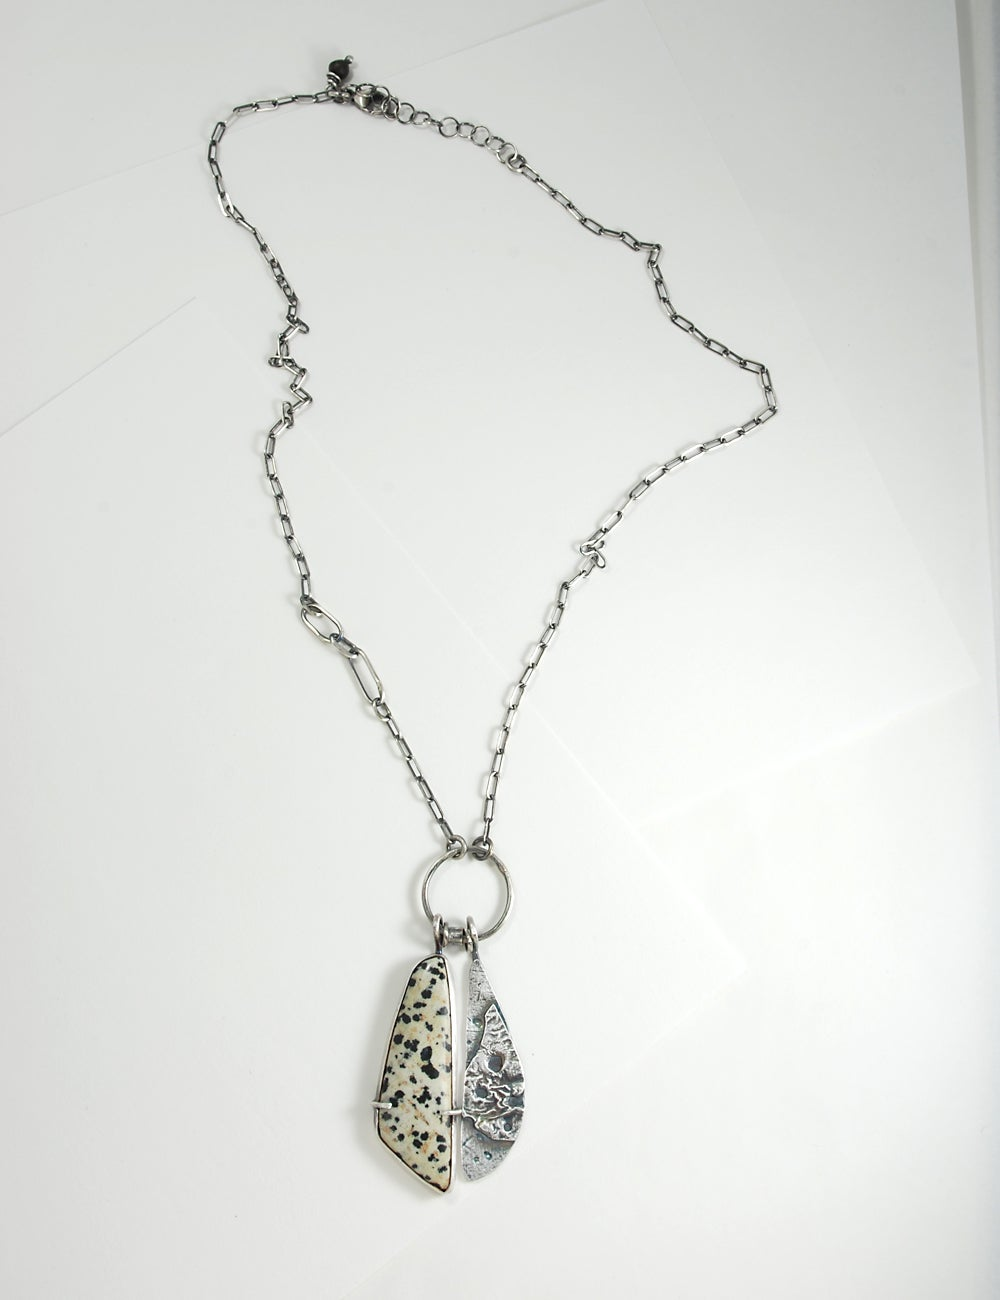 Image of Dalmatian Stone and Sterling Silver Necklace